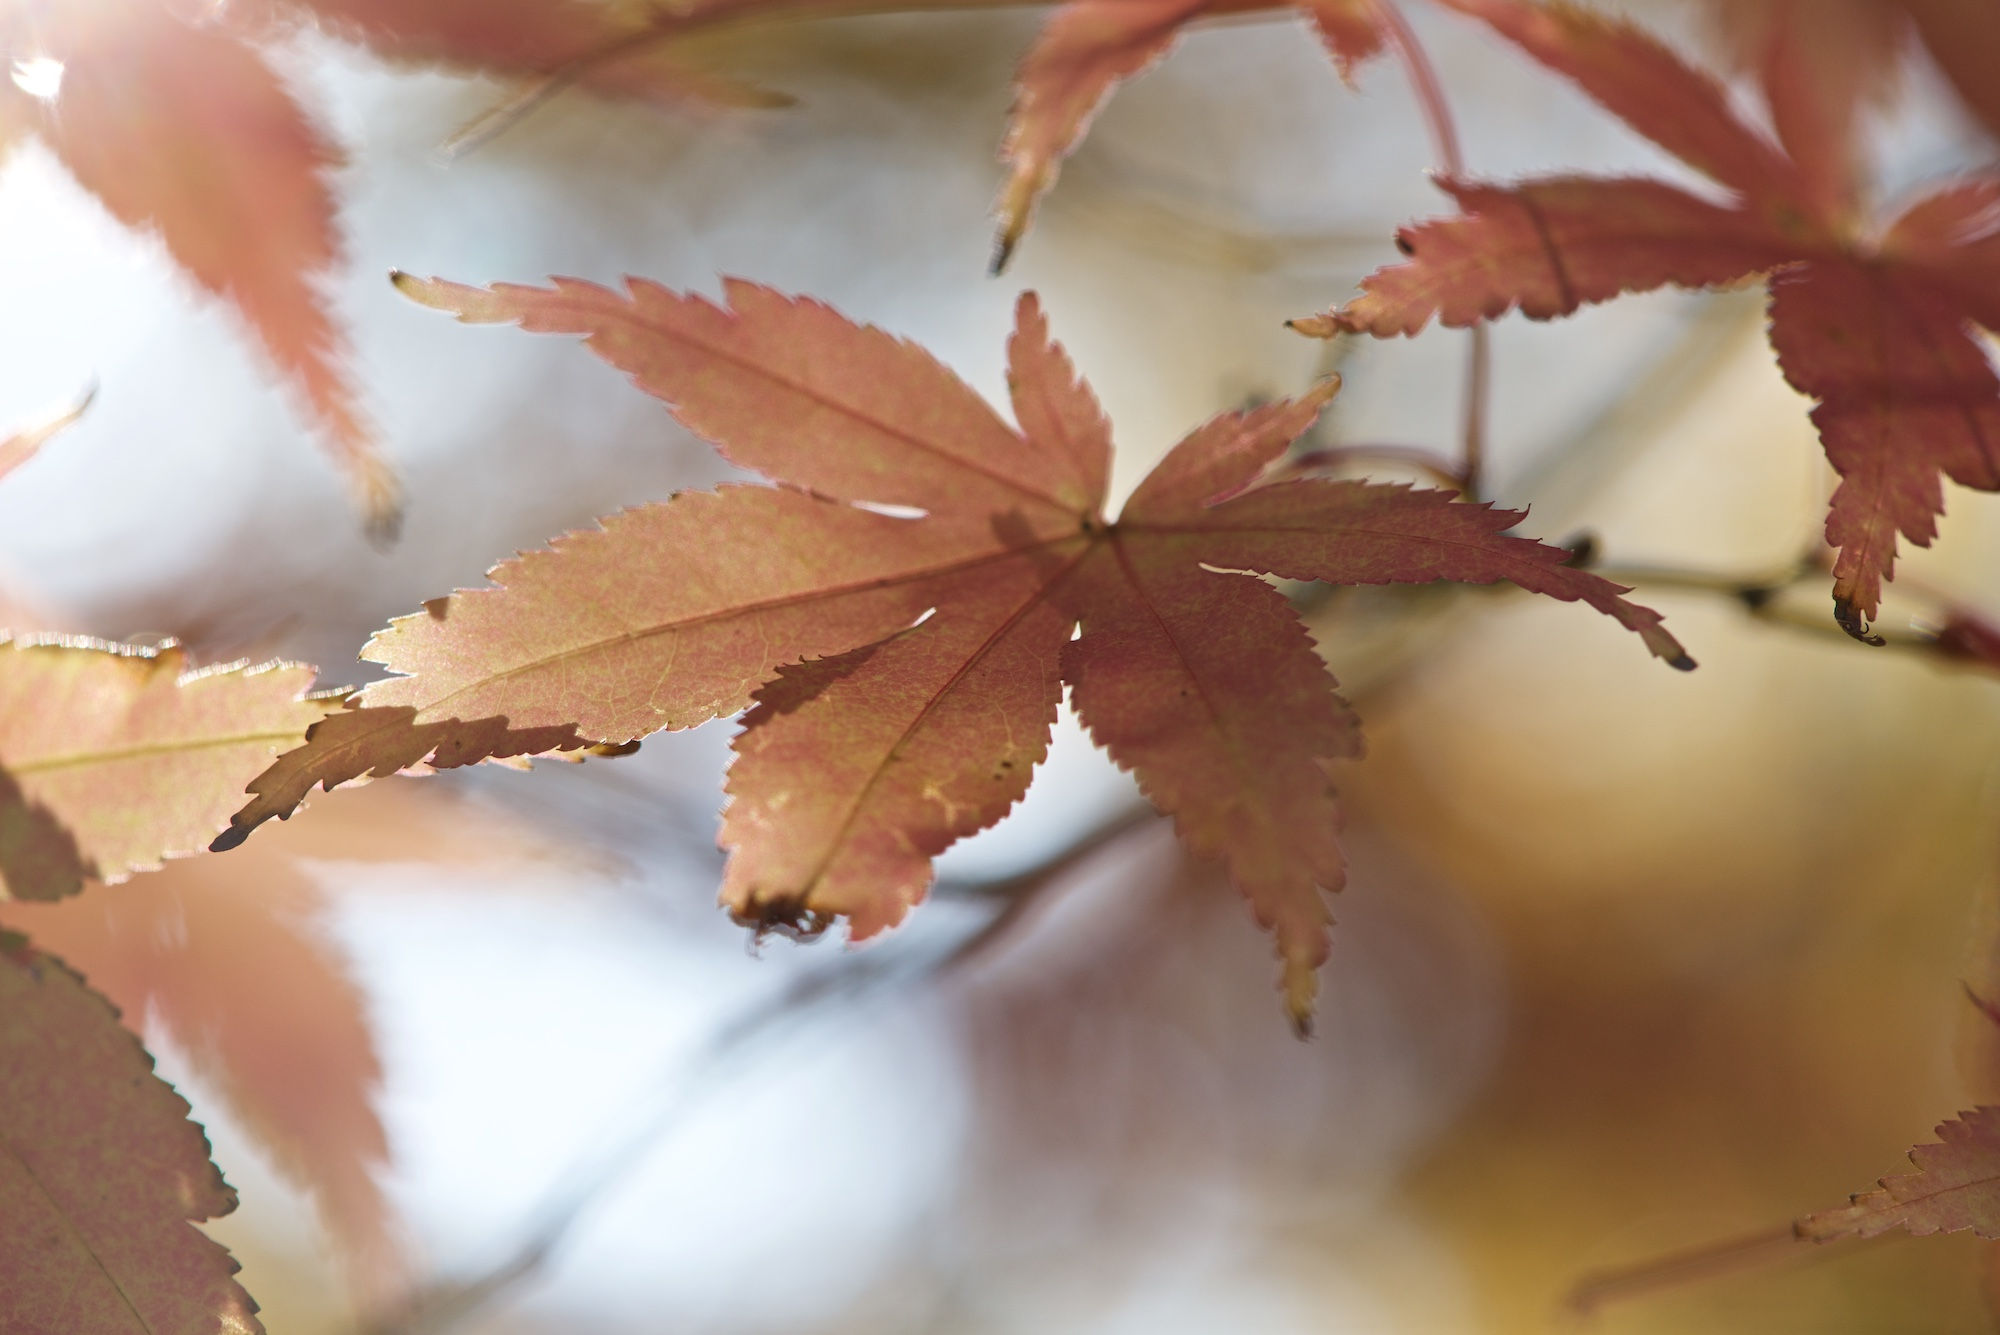 A close macro photo of a beige maple leaf